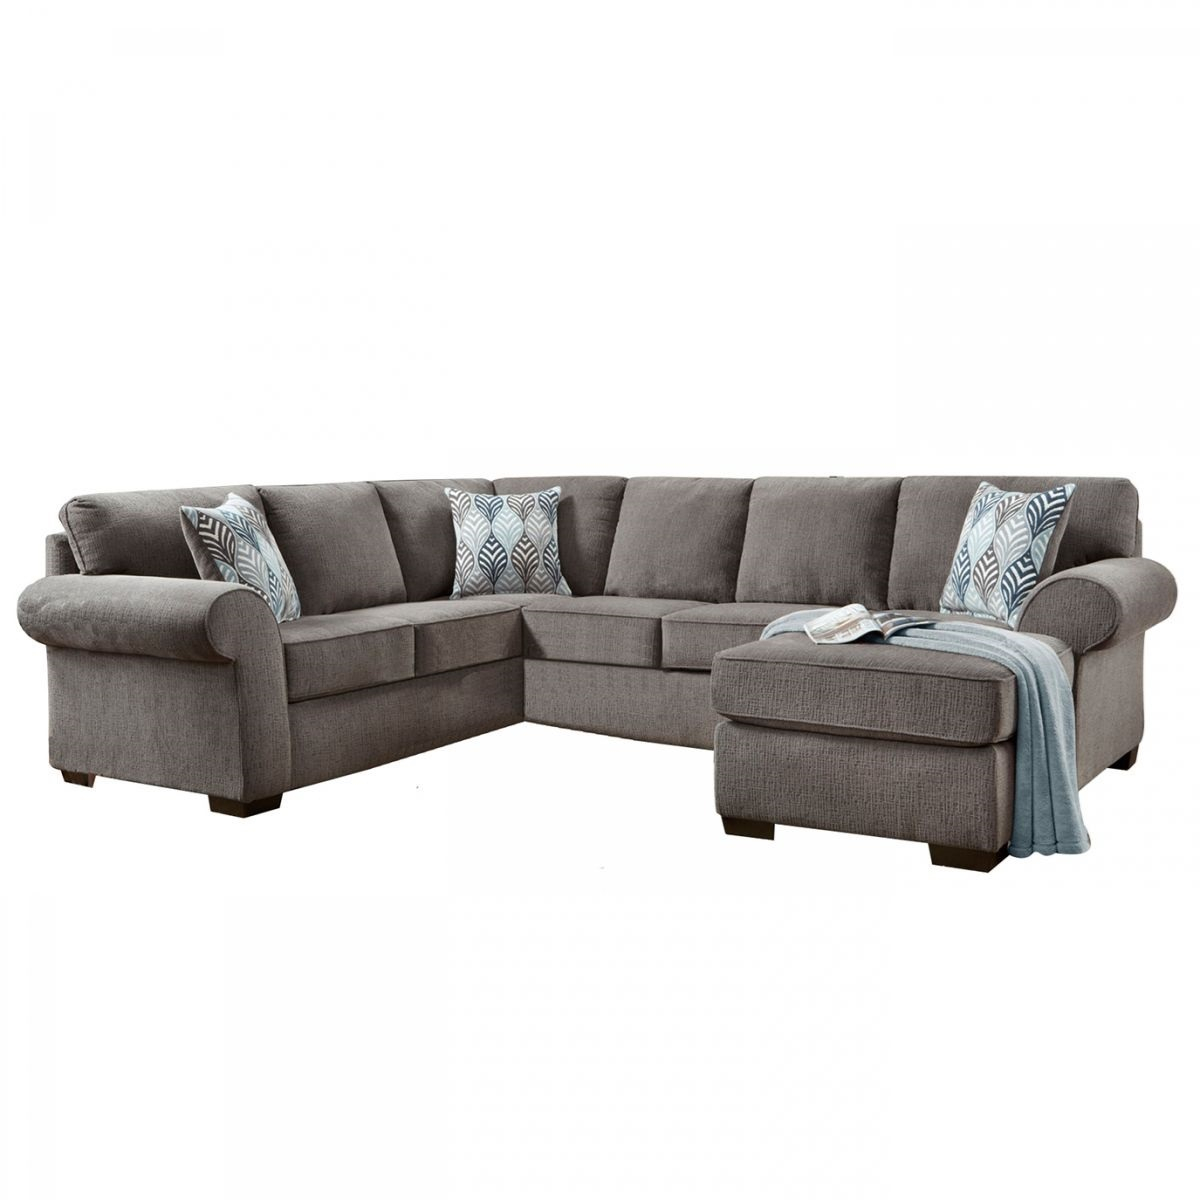 Sectional Sofa Sets Large Small Couches Grey – Locsbyhelenelorasa With Regard To Mcdade Graphite Sofa Chairs (Image 20 of 25)